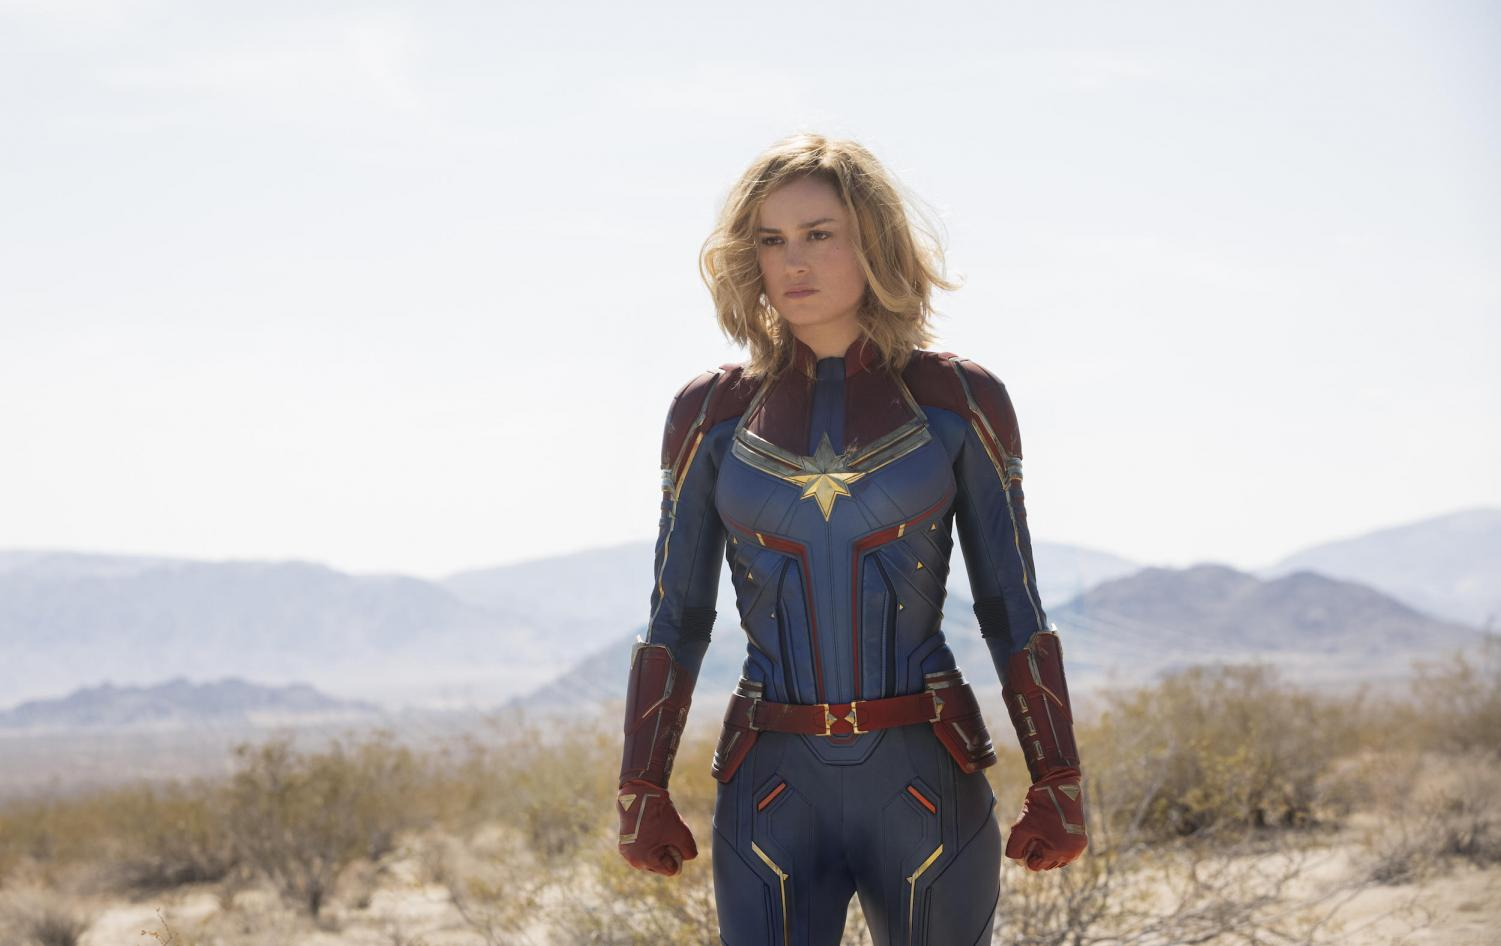 Brie Larson stars as Captain Marvel.